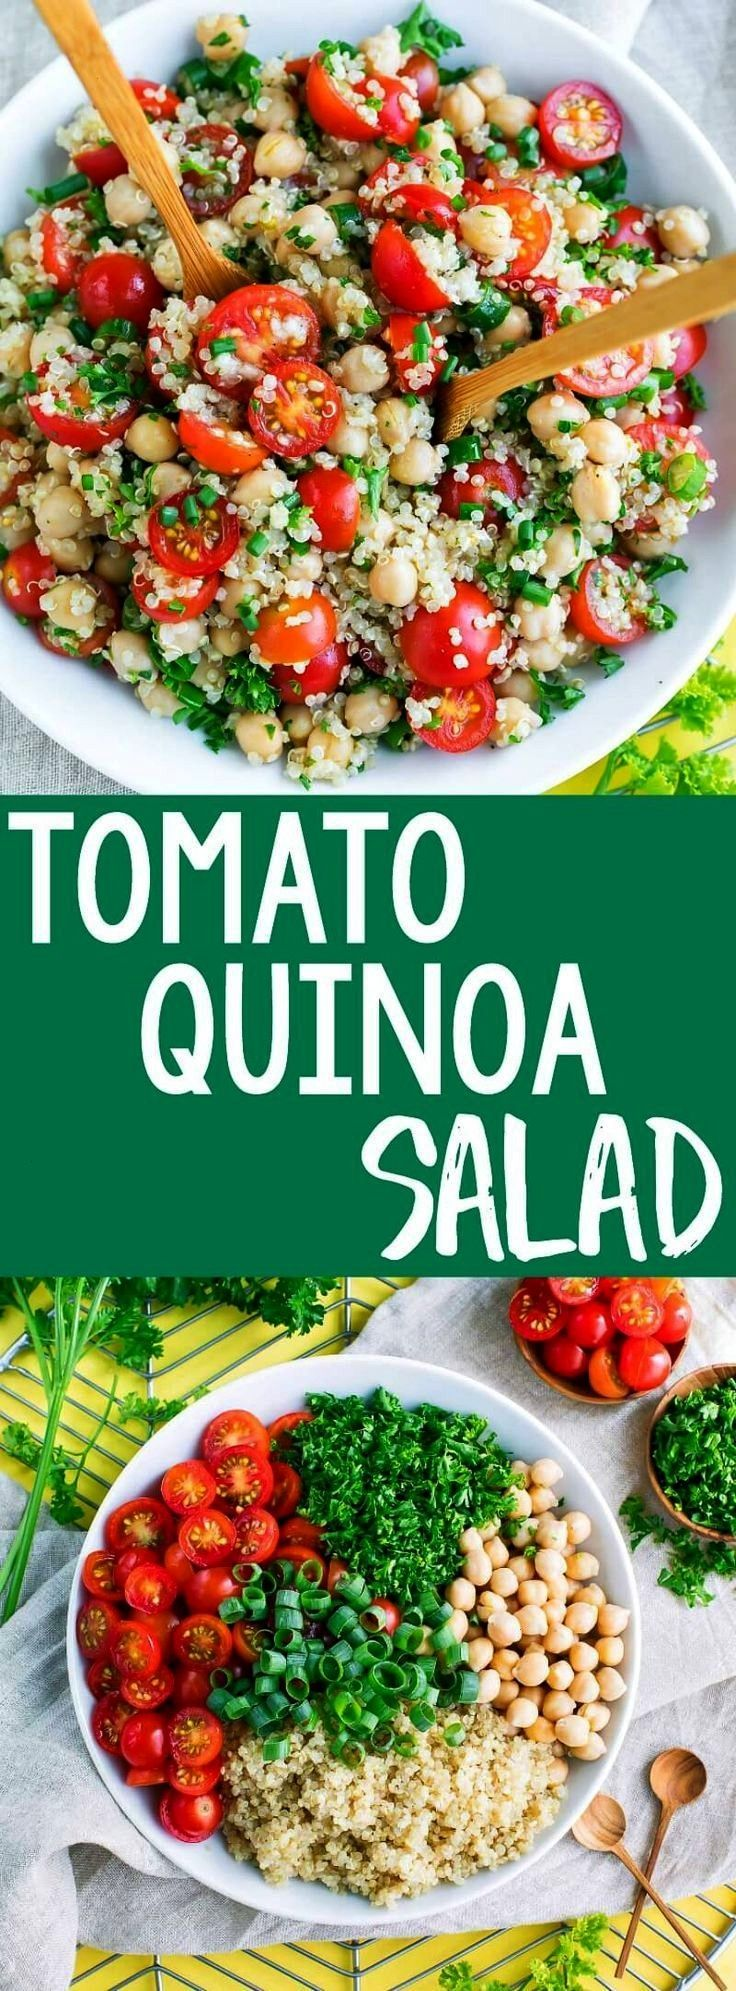 Quinoa Salad Its time to add another tasty quinoa recipe to our meal prep game! This Tomato Quinoa